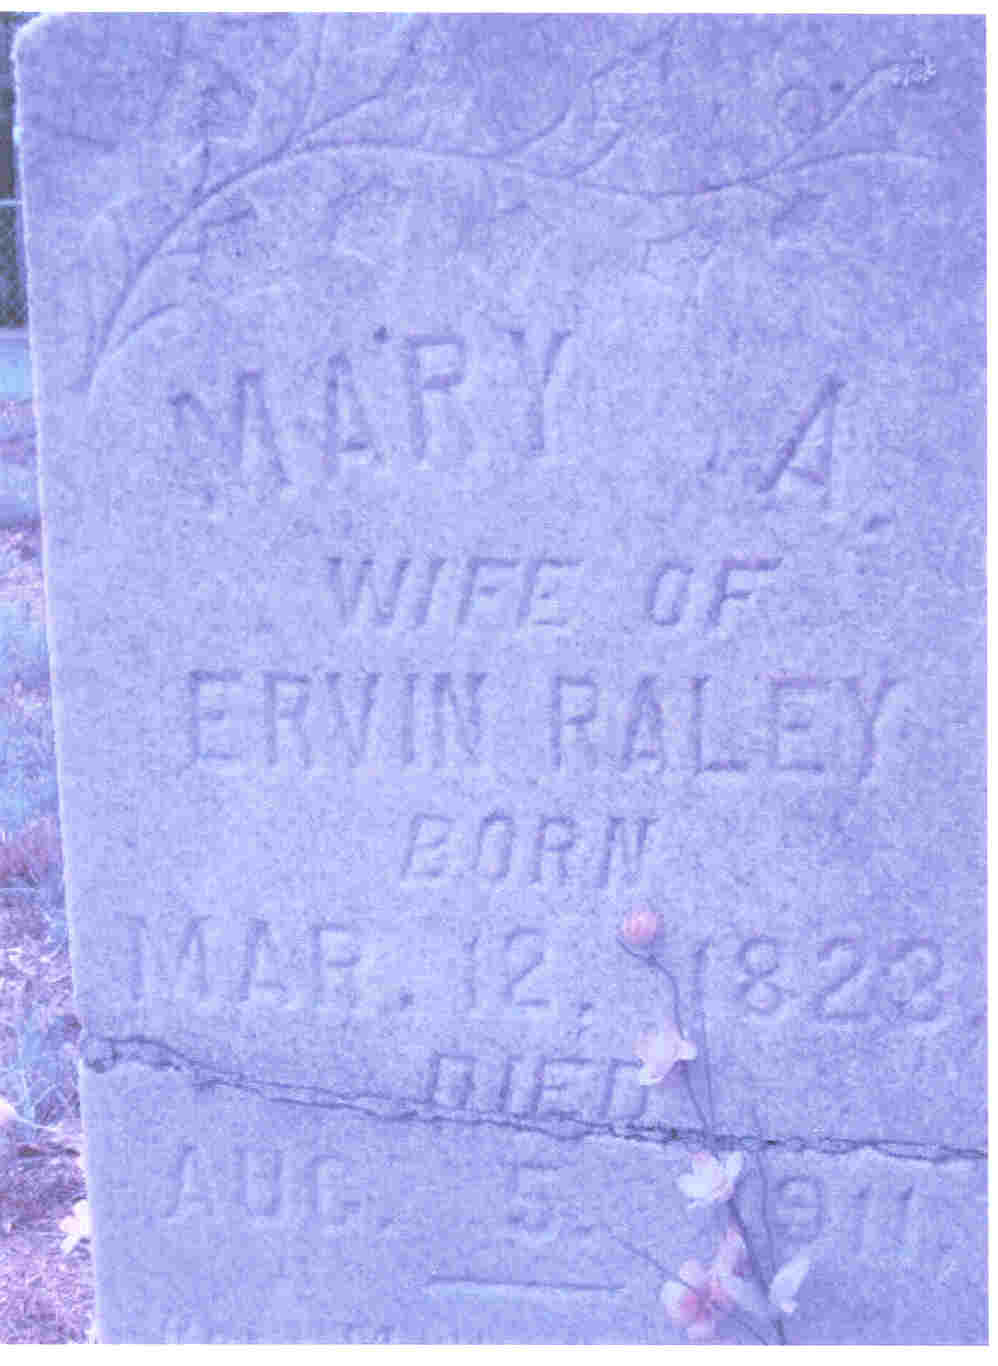 Mary A. Raley wife of Ervin Raley Mar. 12, 1823 -Aug 5, 1911